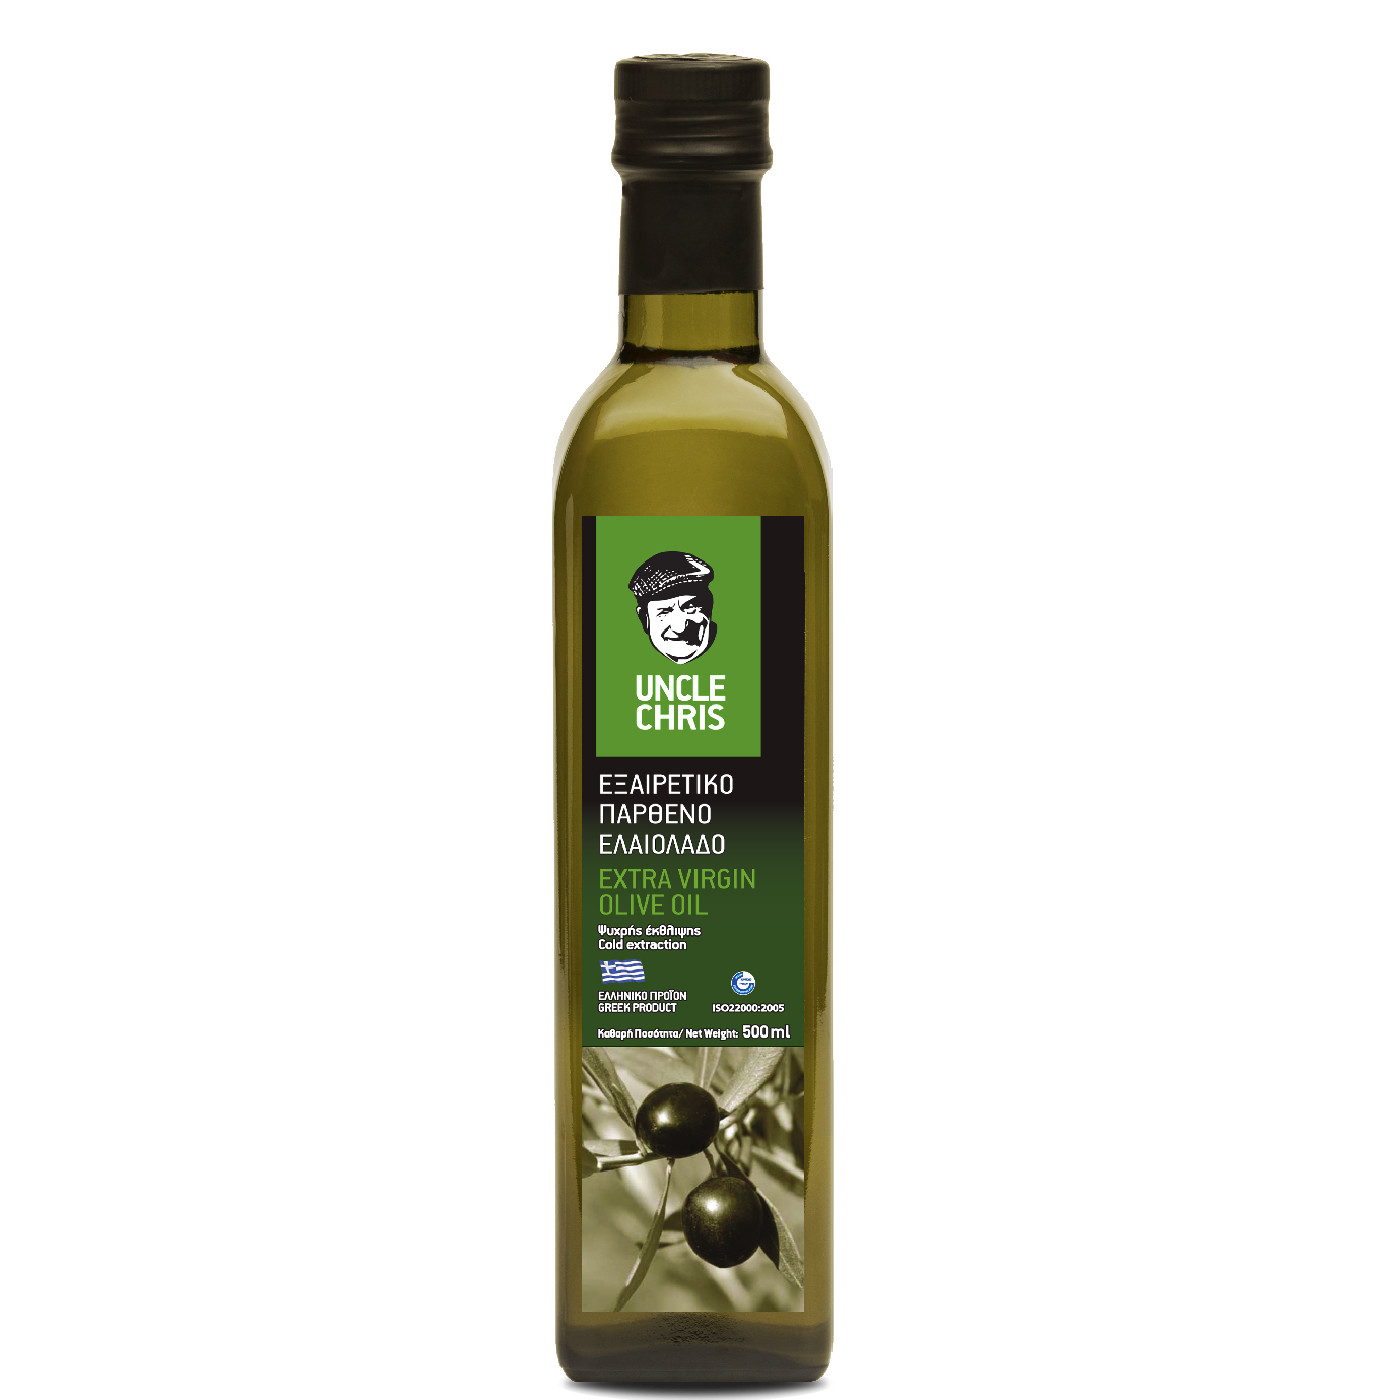 Uncle Chris Extra virgin olive oil marasca 500ml